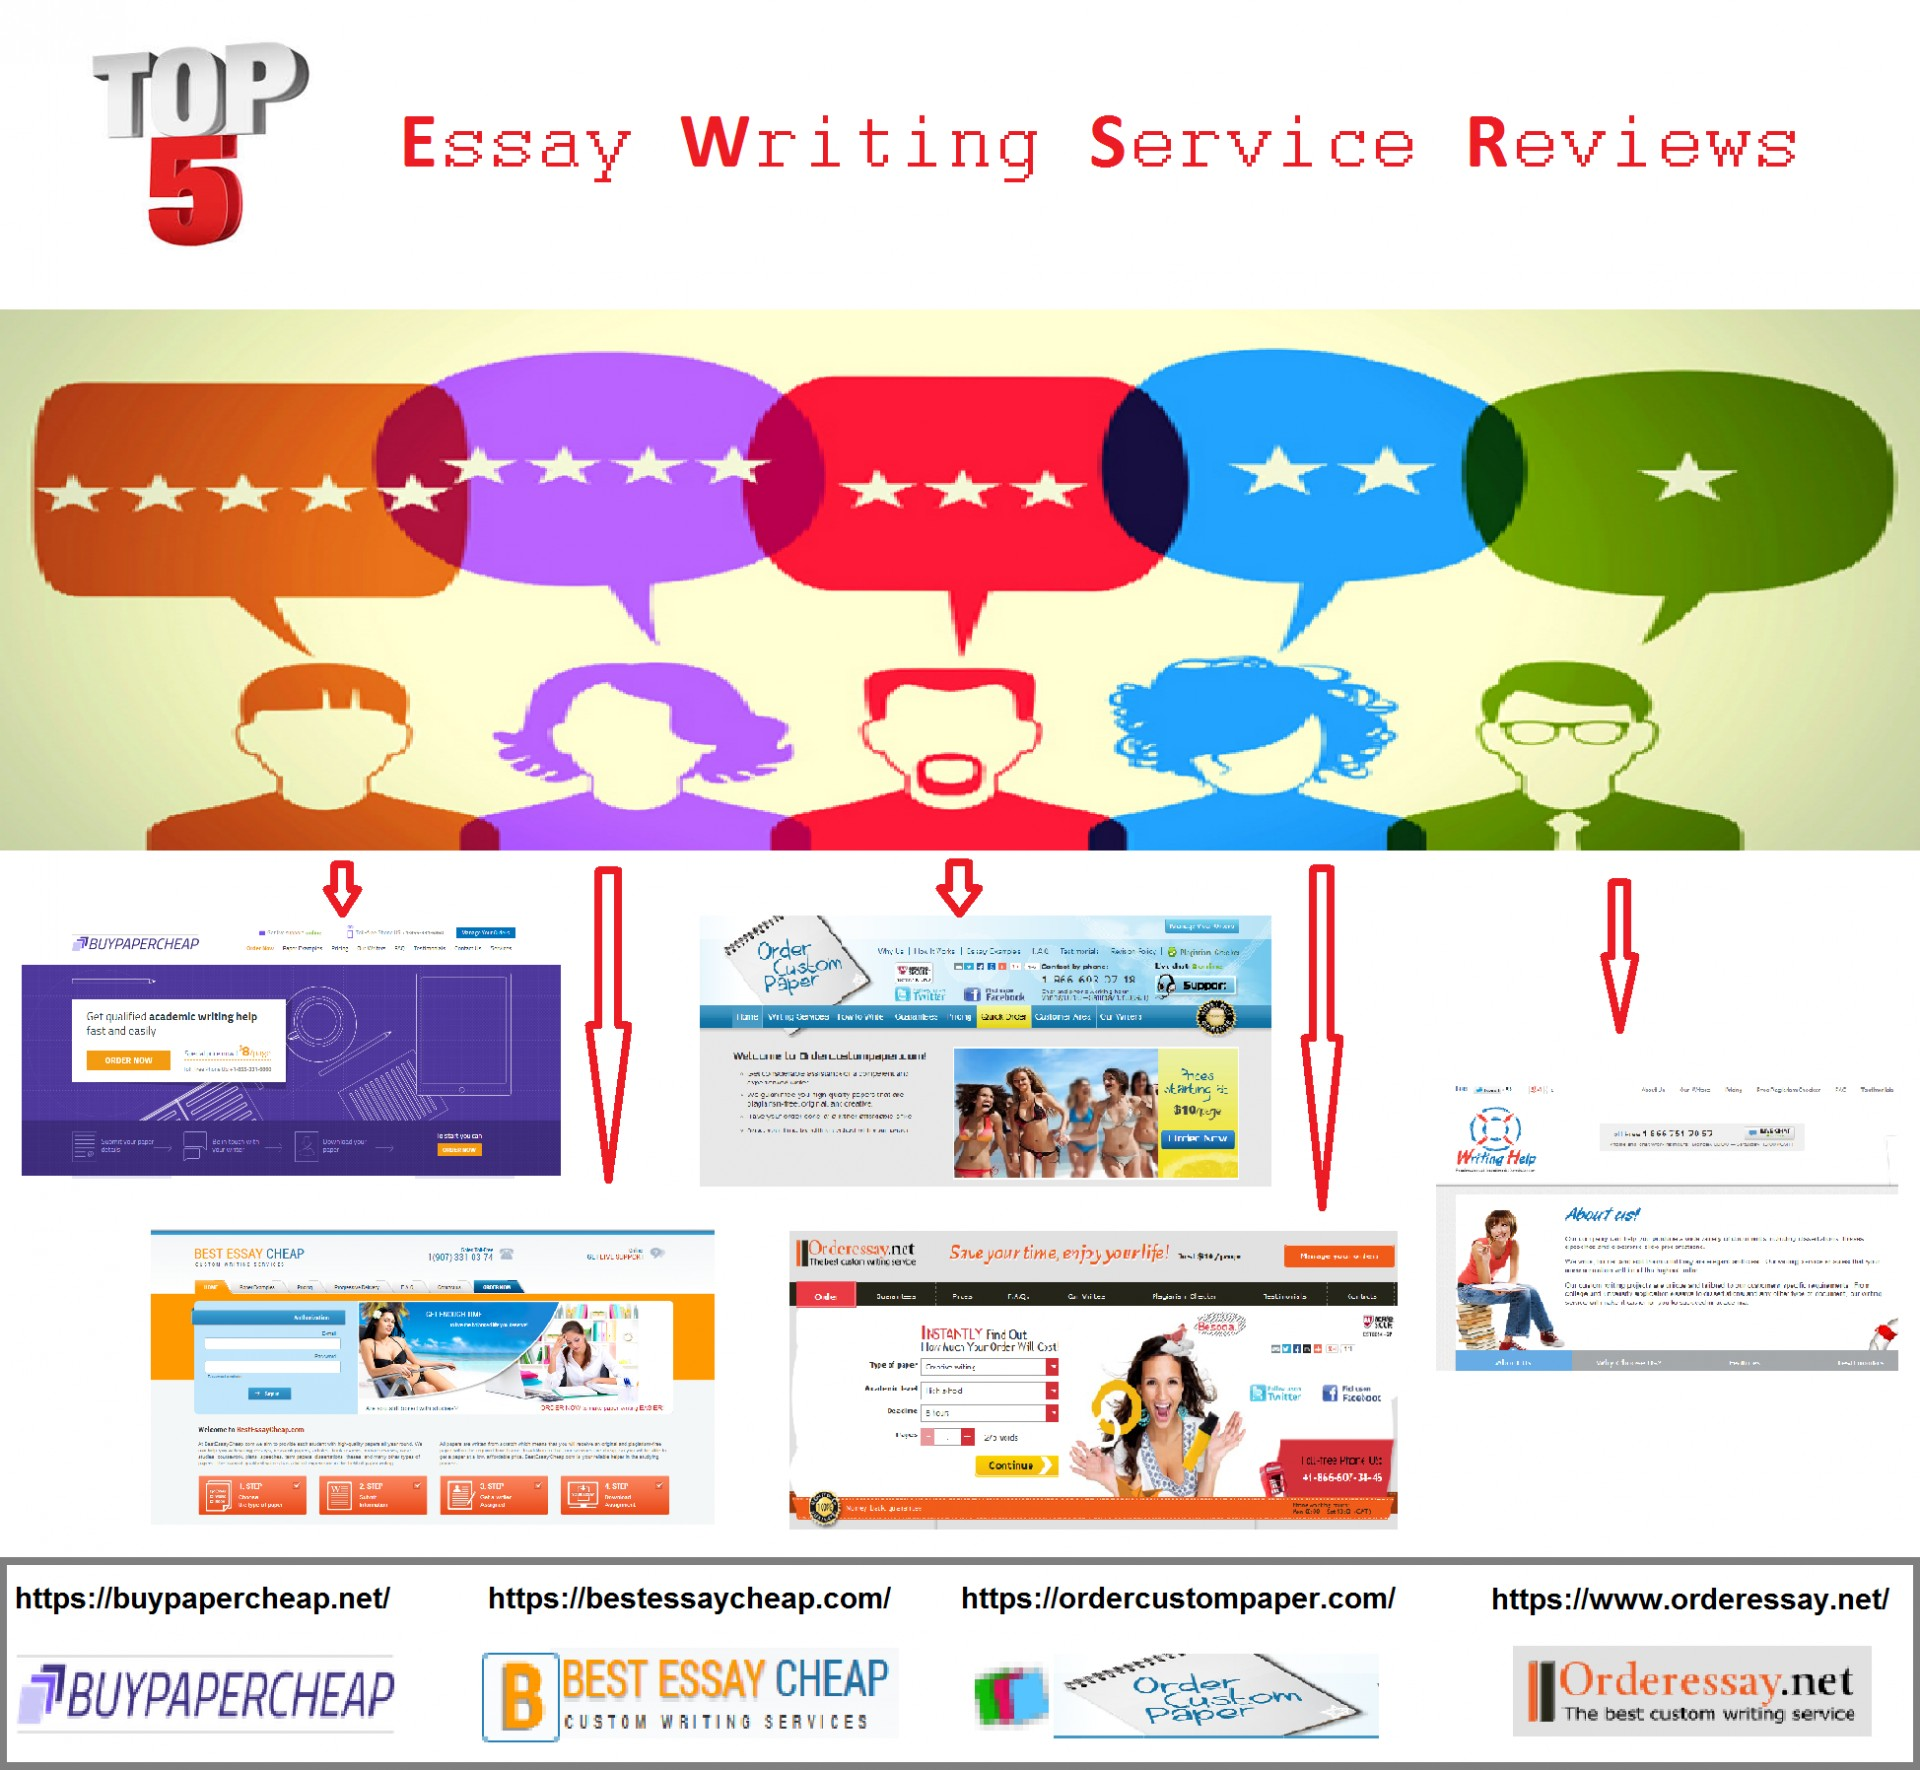 018 Custom Essay Service Writing Services From Best Essays Paper Sites Company Reviews Ideas Of Sale Discount Br Beautiful Are Legal Cheap Canada 1920